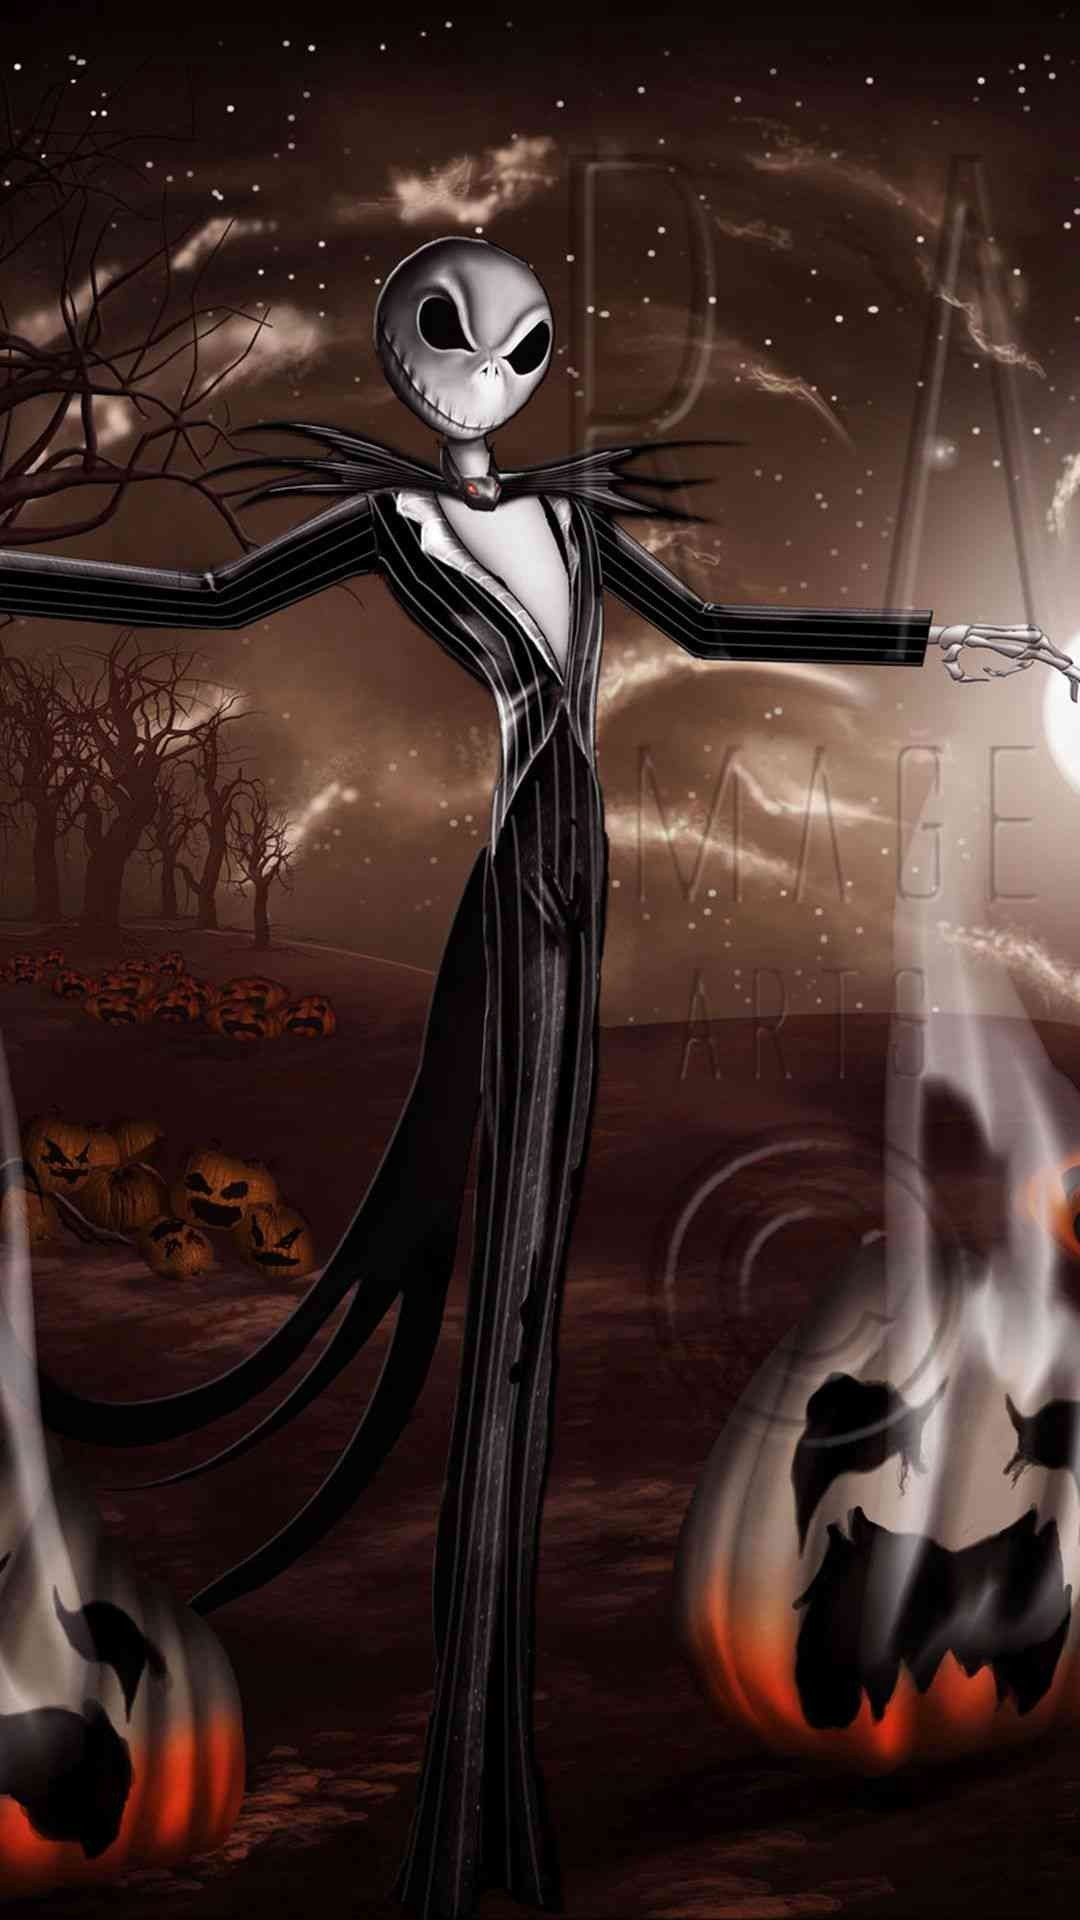 1080x1920 Crazy Jack Skellington Pumpkin 2014 Halloween iPhone 6 plus Wallpapers -  Night Before Christmas, Tim